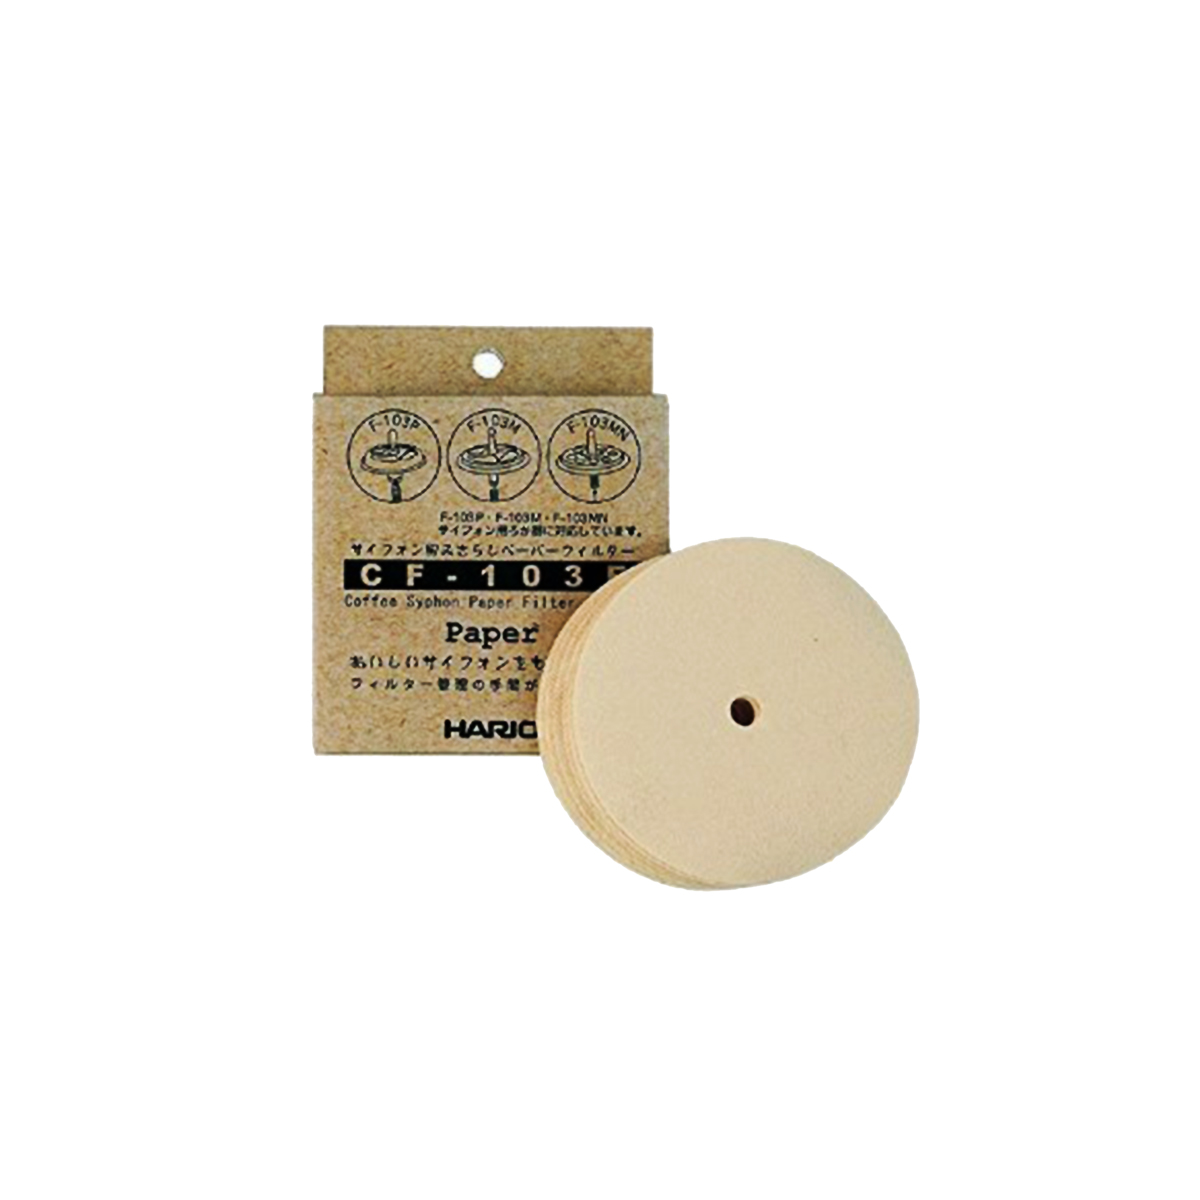 Hario Syphon Paper Filter 100 Pack CF-103E